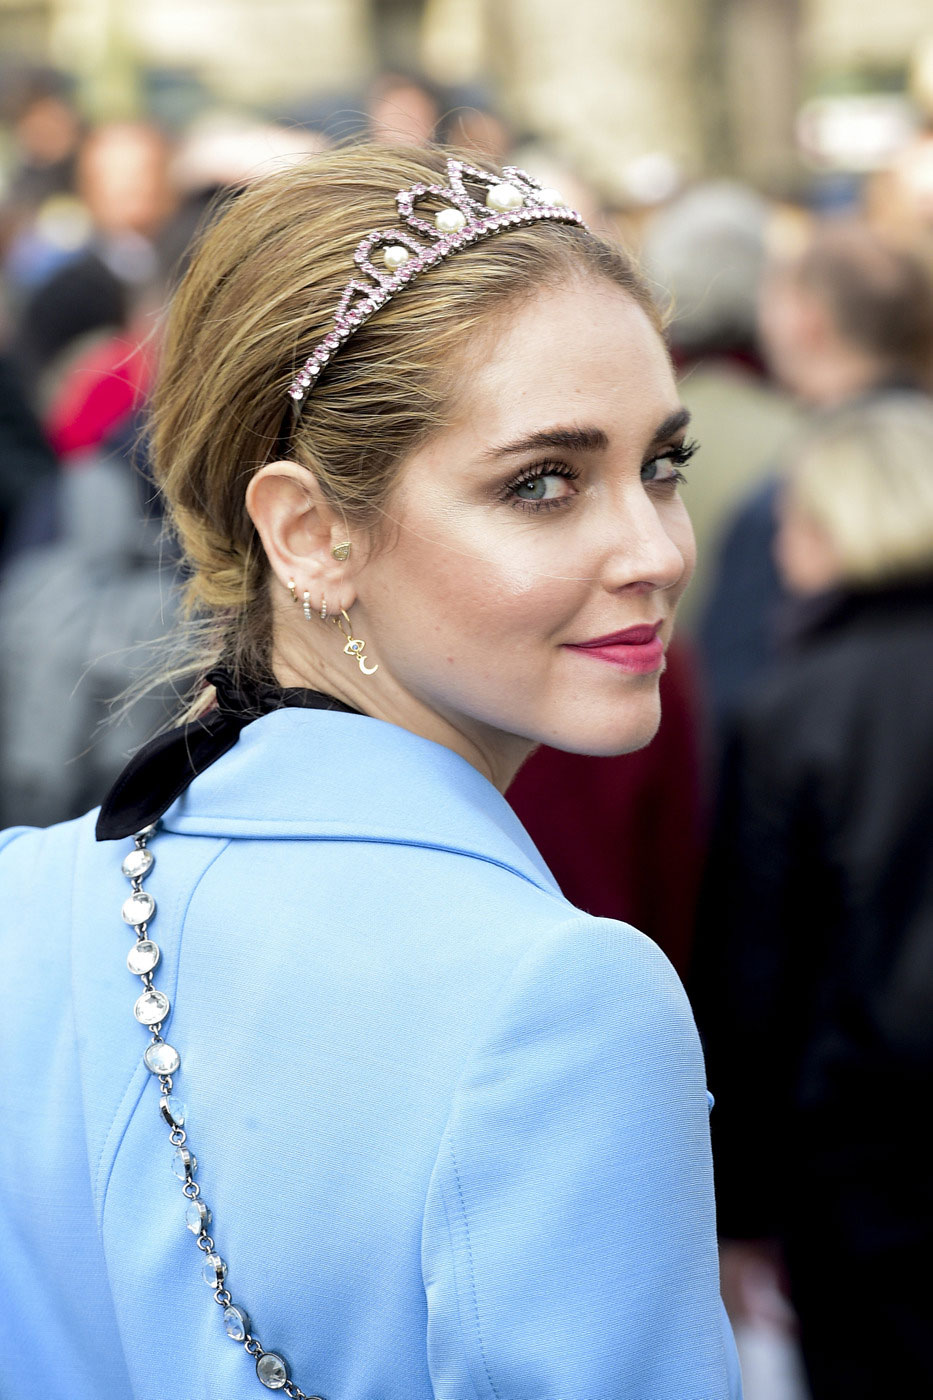 Would you wear a tiara for everyday?